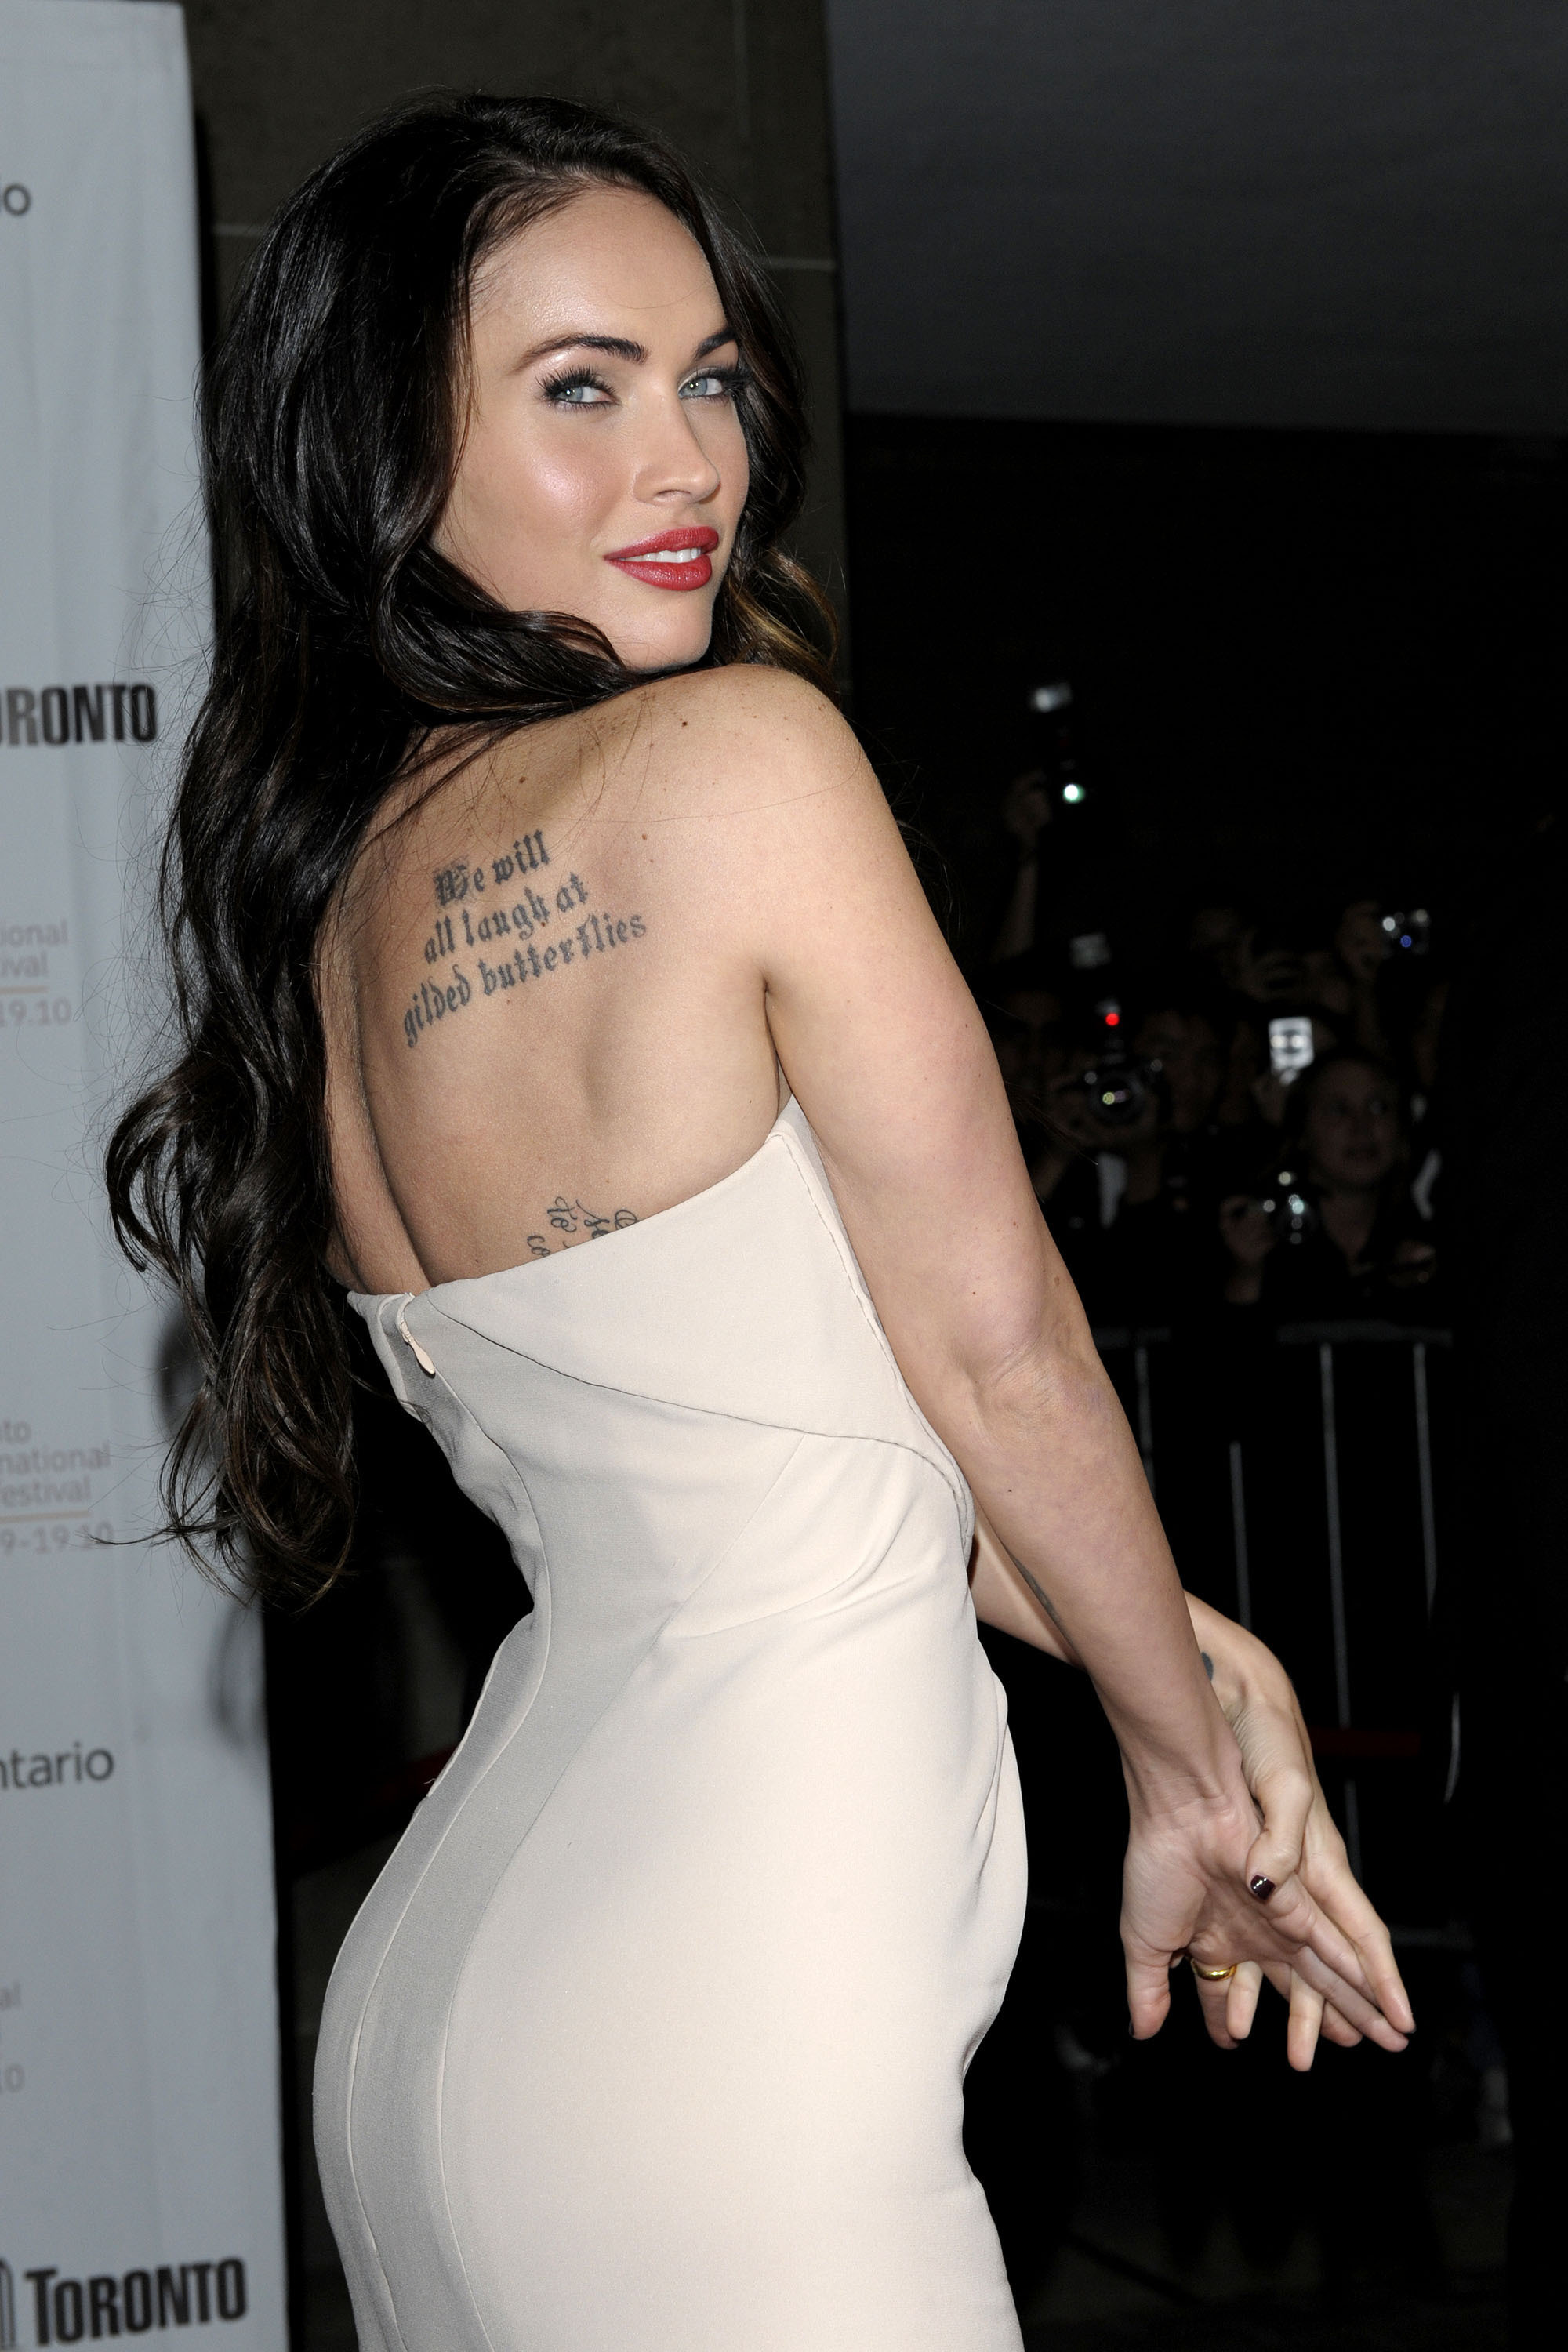 Megan Fox Tattoofvdfgv